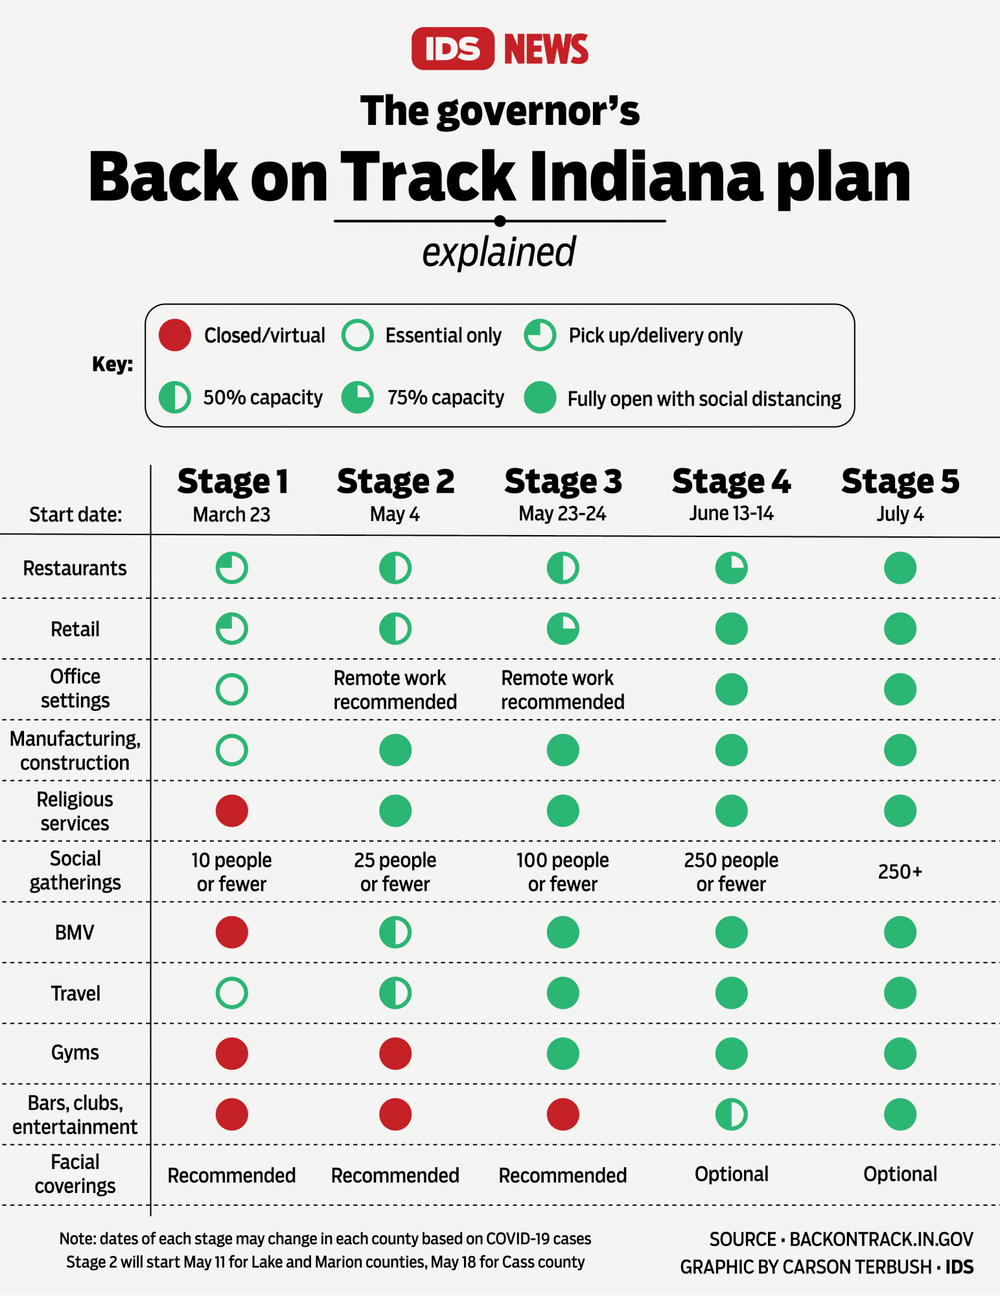 back on track indiana 5 stages opening